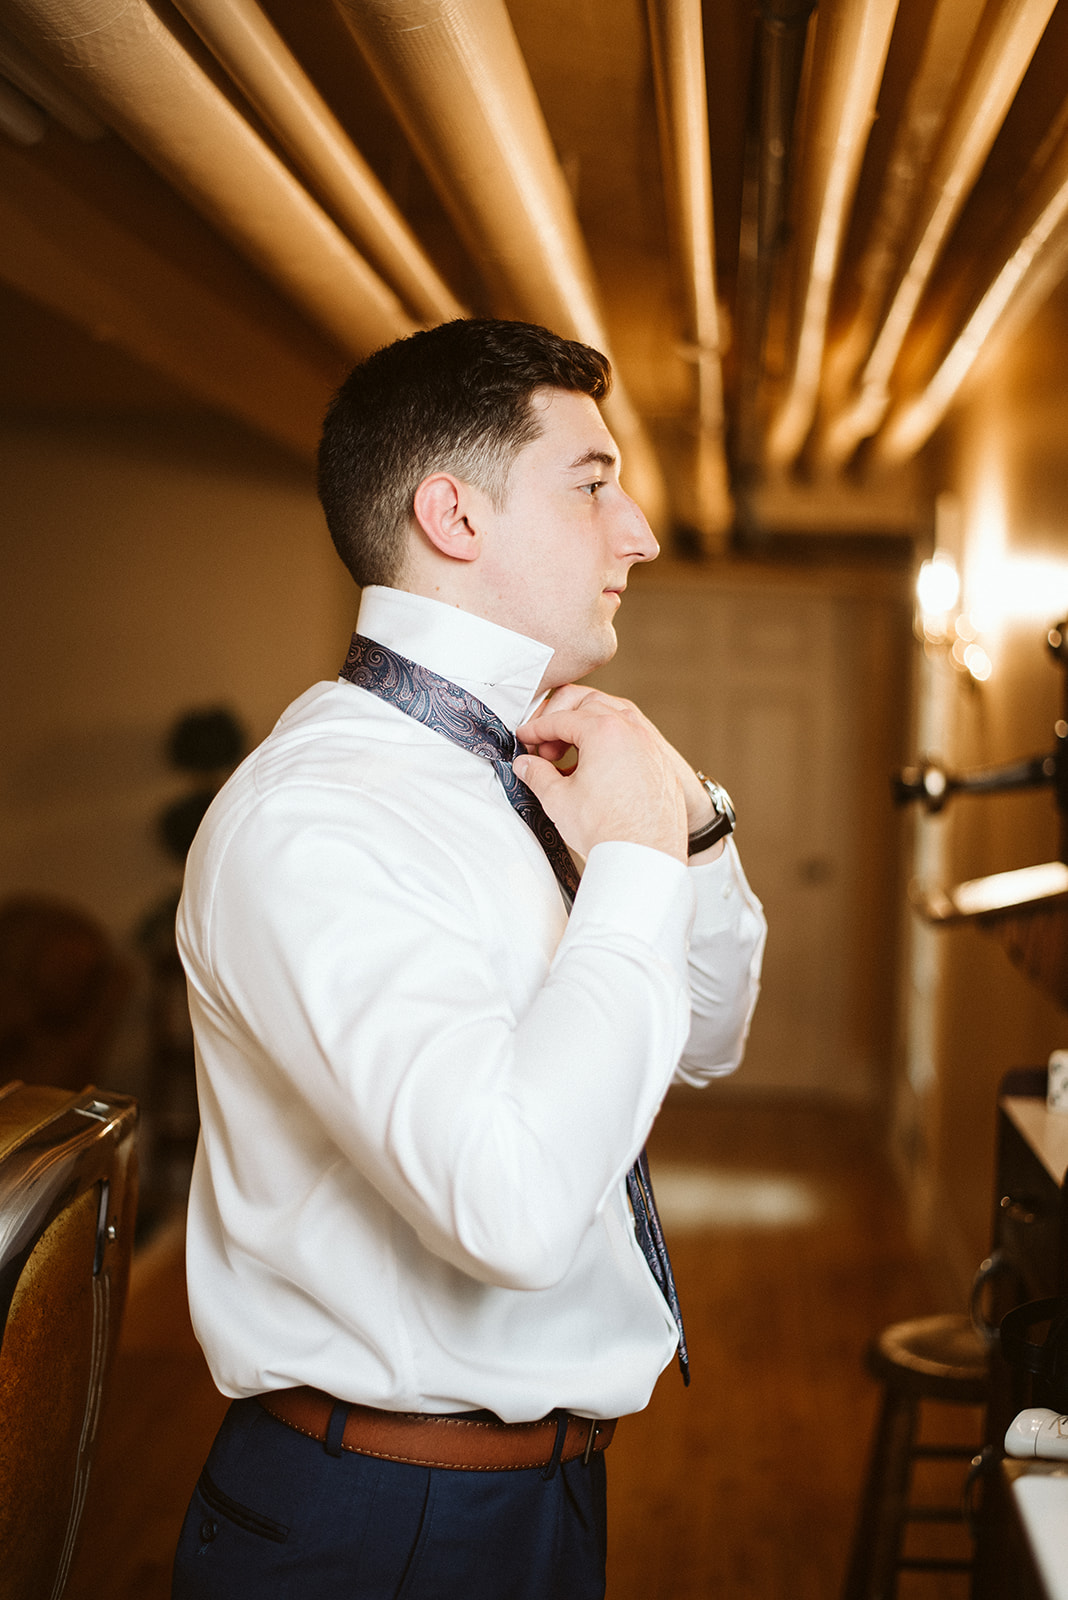 The groom is getting ready at Drumore Estate for his wedding.